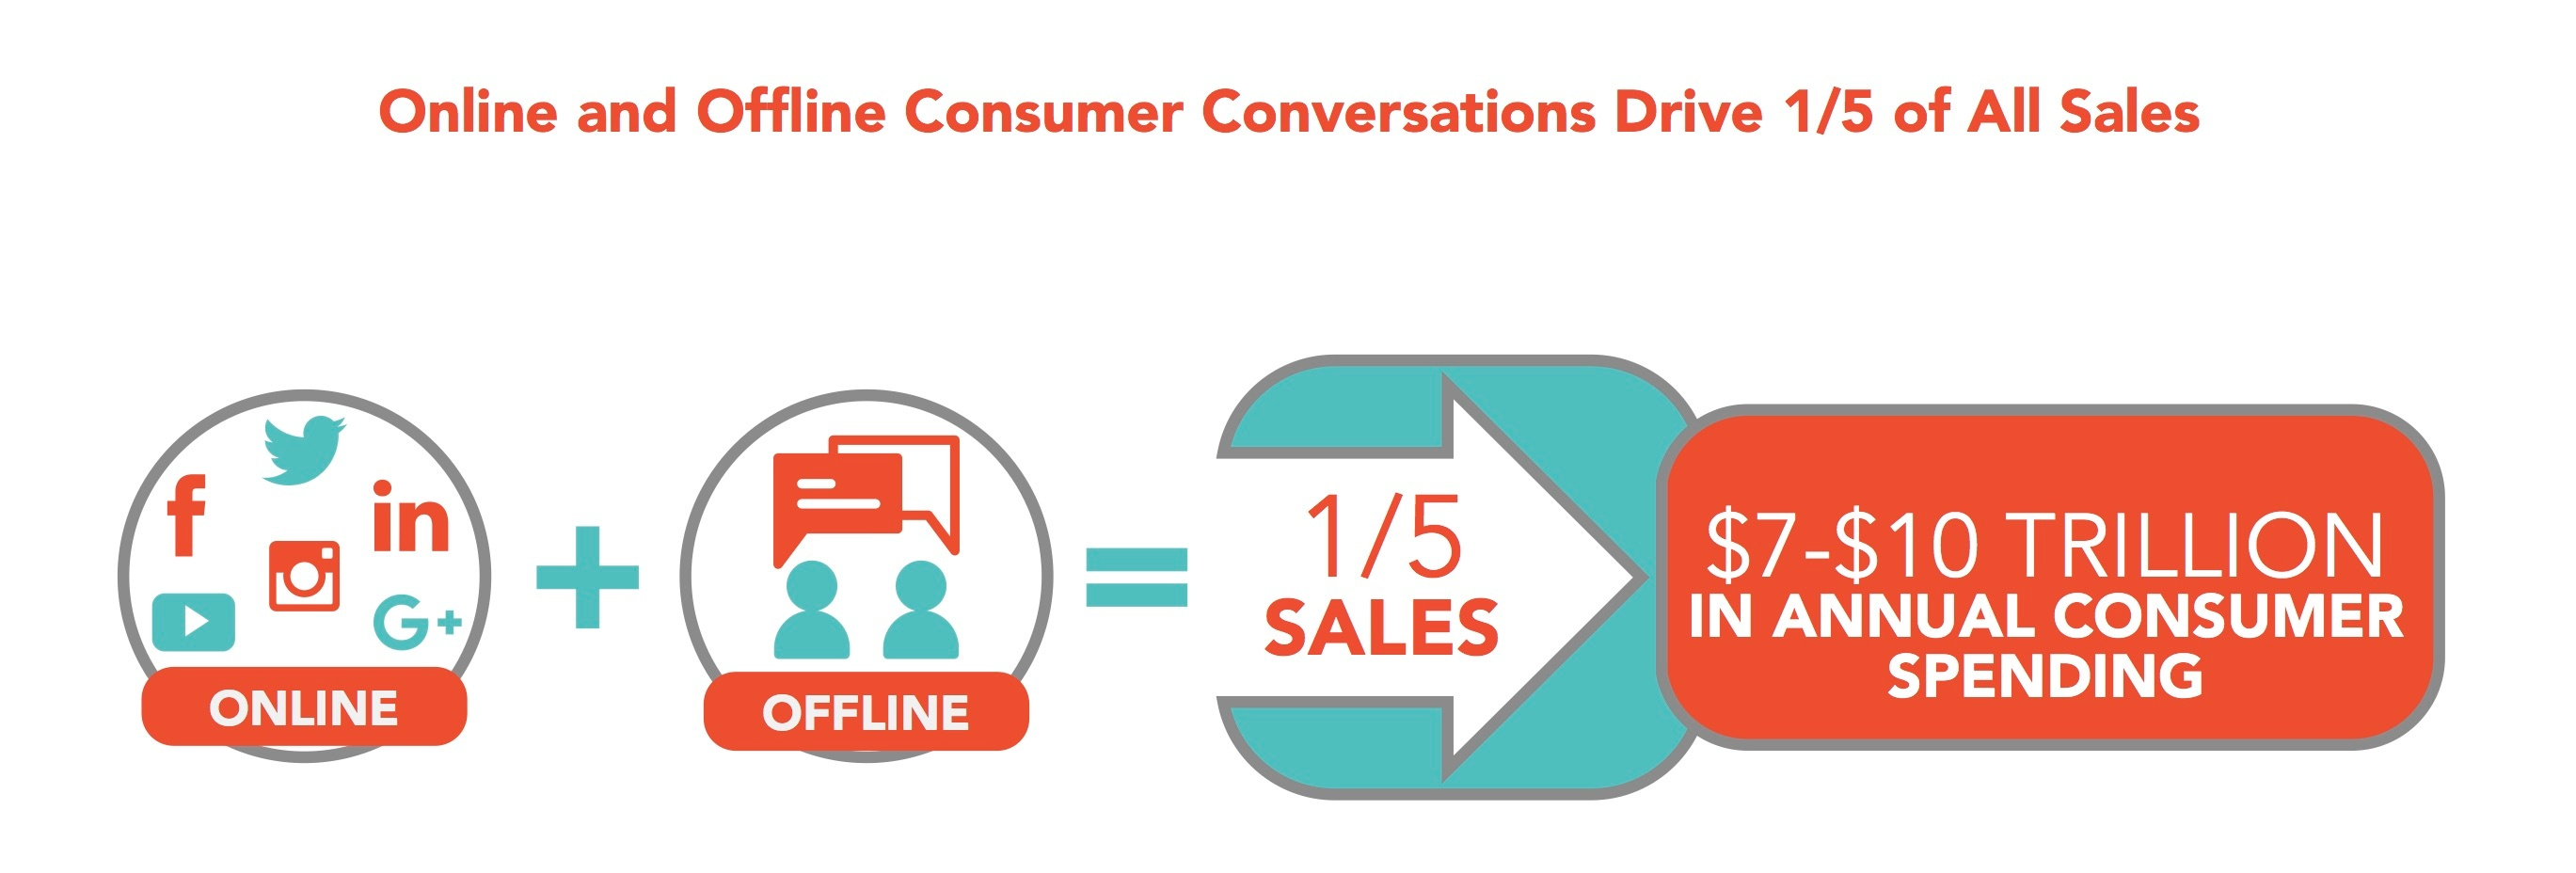 Online and Offline Consumer Conversations Drive 1/5 of Sales